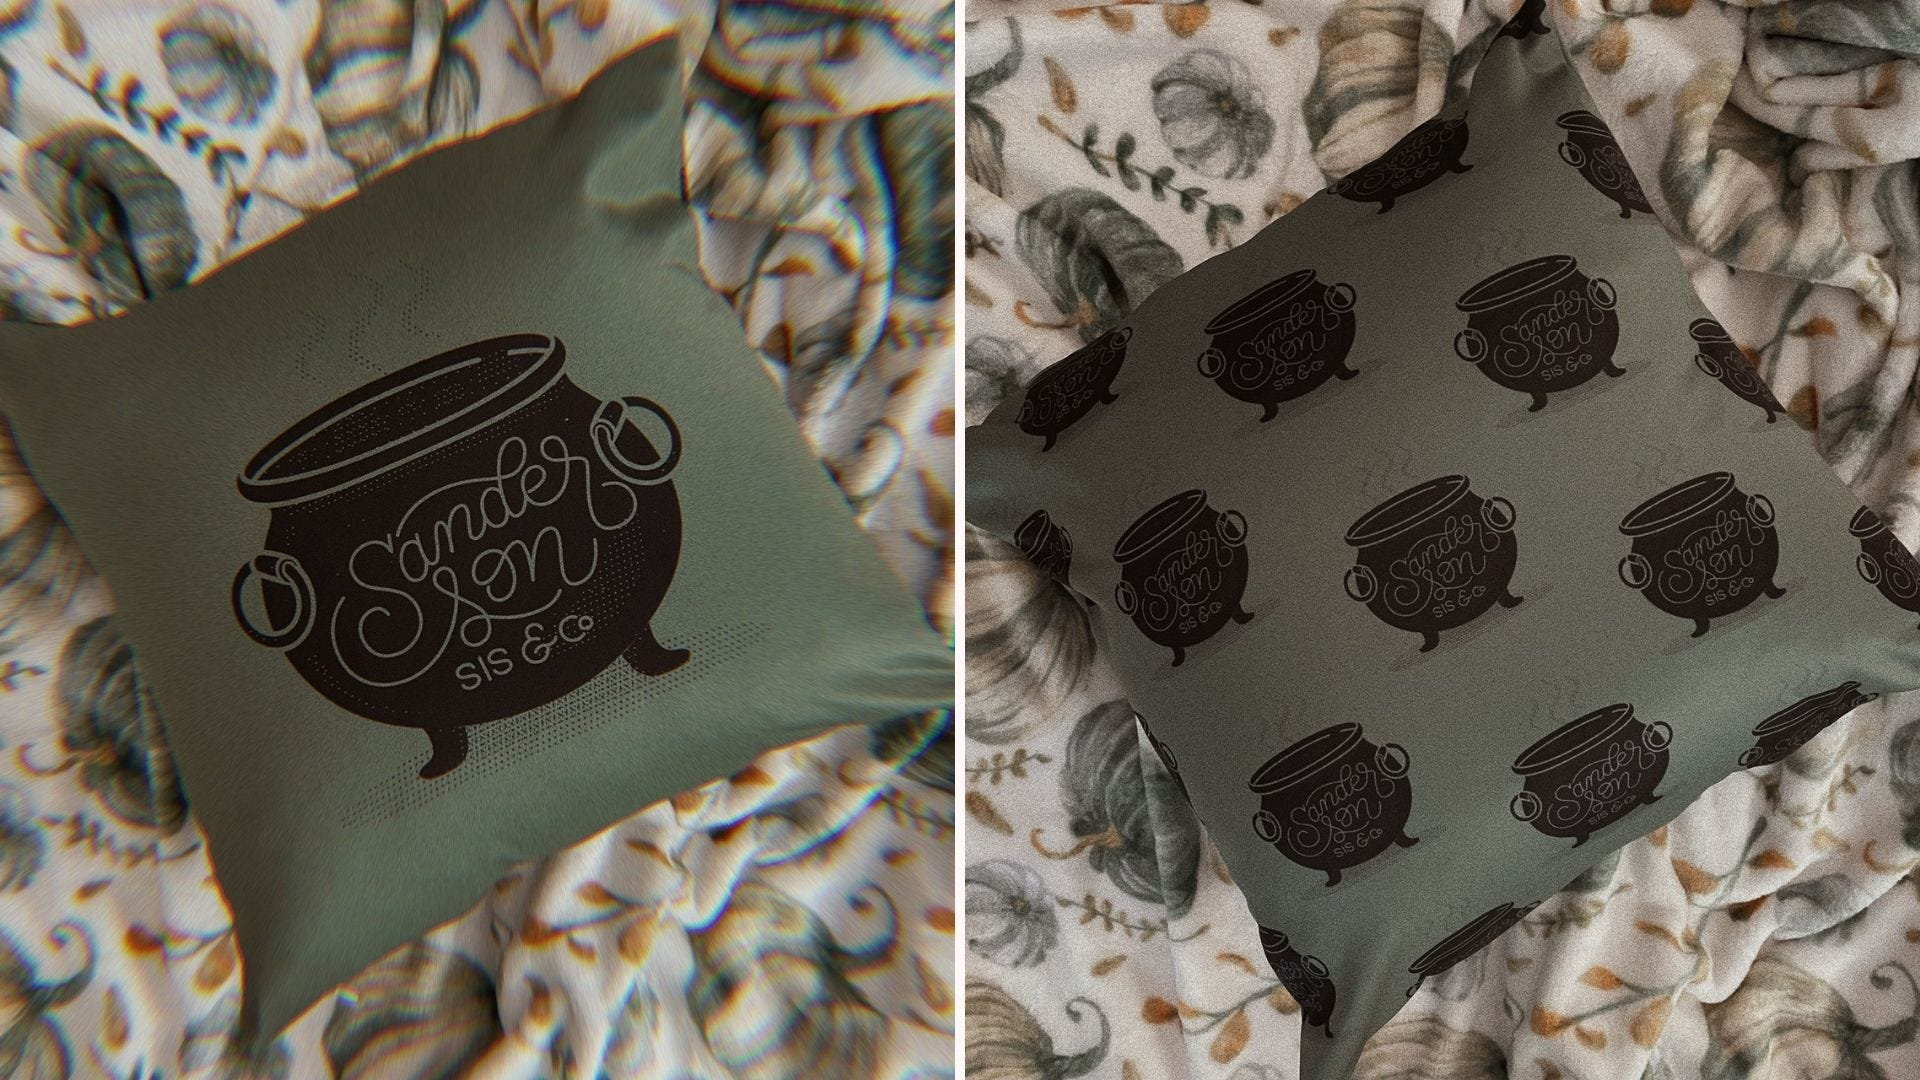 A green pillow with a large cauldon image on the front; the back of the same pillow with a smaller cauldron print